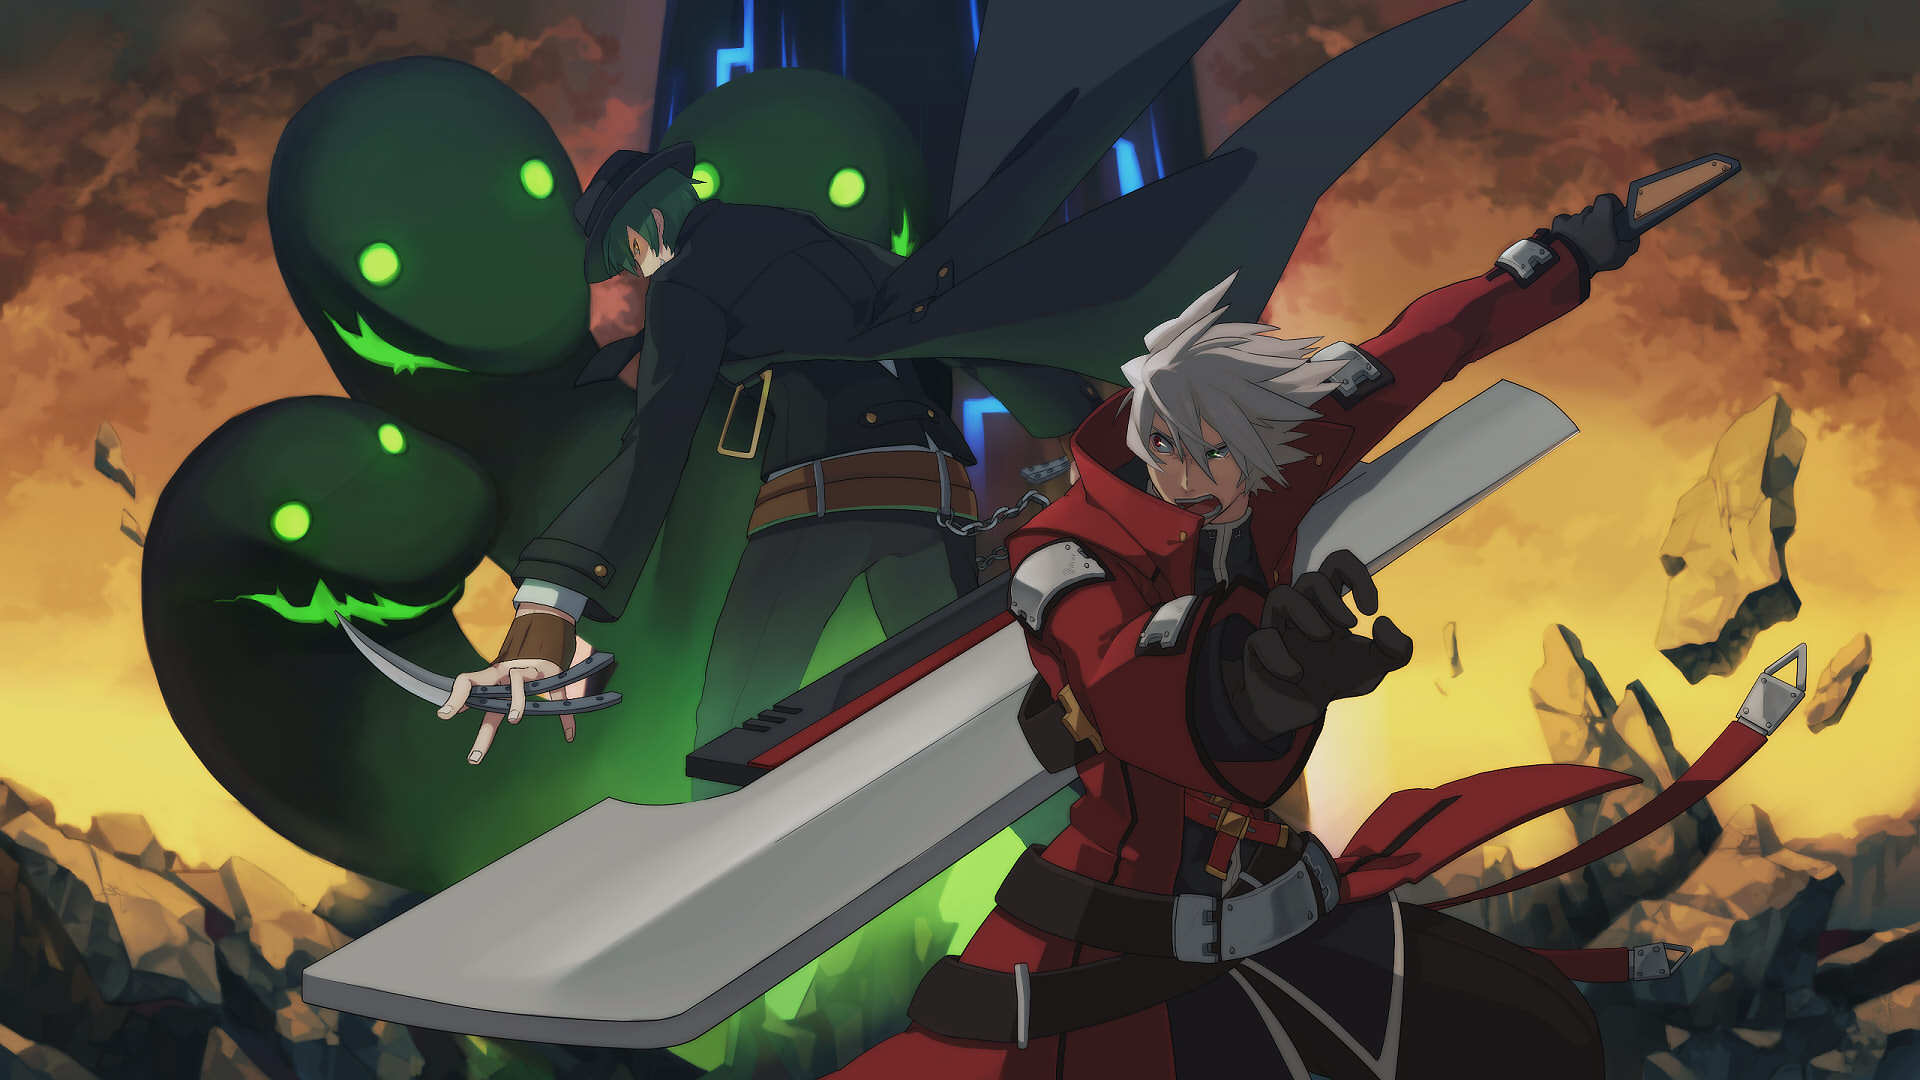 Blazblue Hazama Kz Kura Ragna The Bloodedge Wallpaper 1920x1080